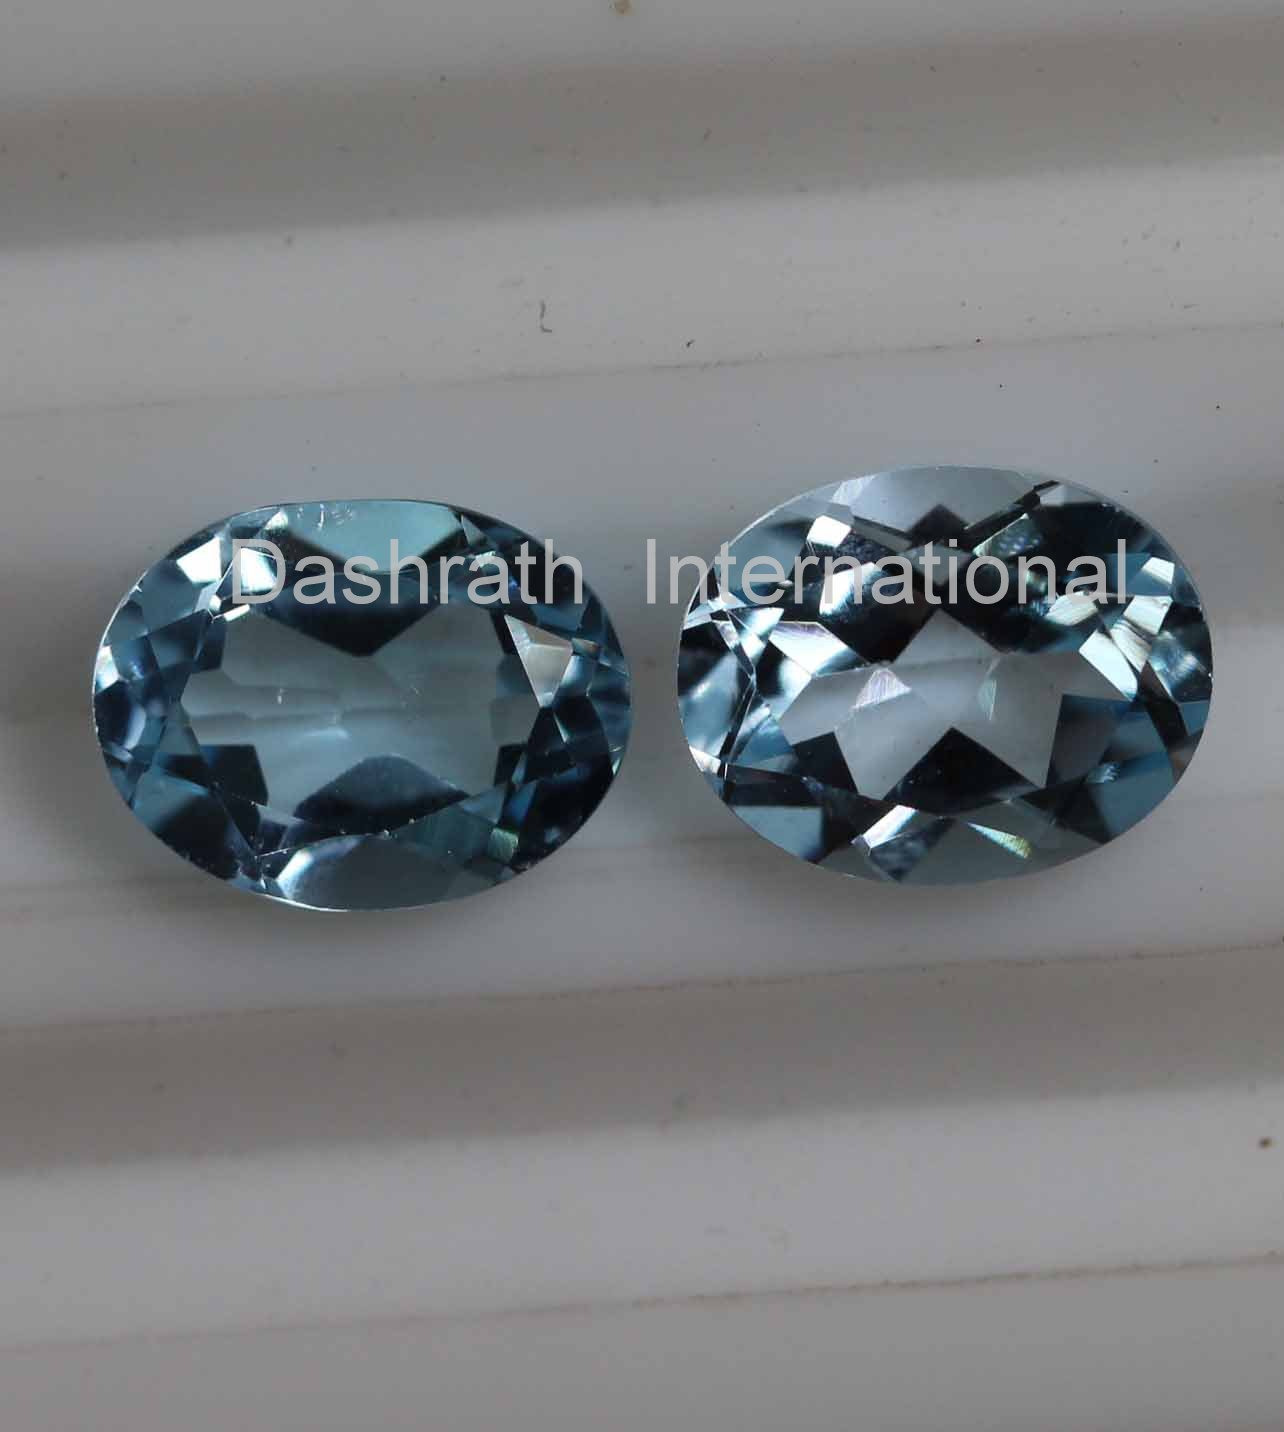 8x10mm Natural Sky Blue Topaz Faceted Cut Oval 1 Piece  Top Quality Loose Gemstone